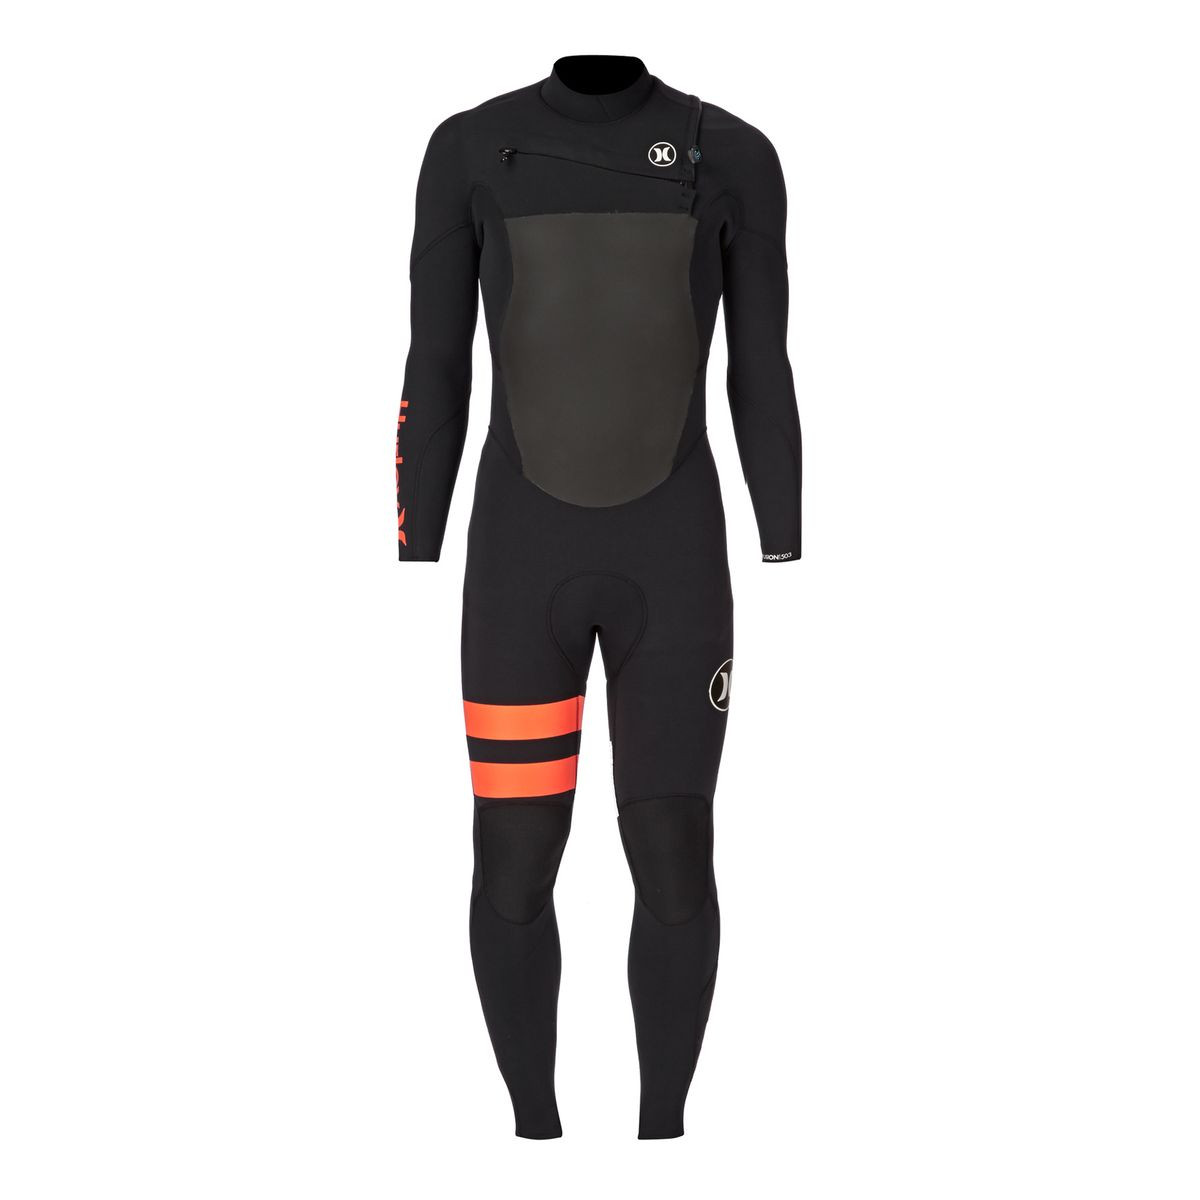 Hurley Fusion 5/3mm Chest Zip Wetsuit - Black